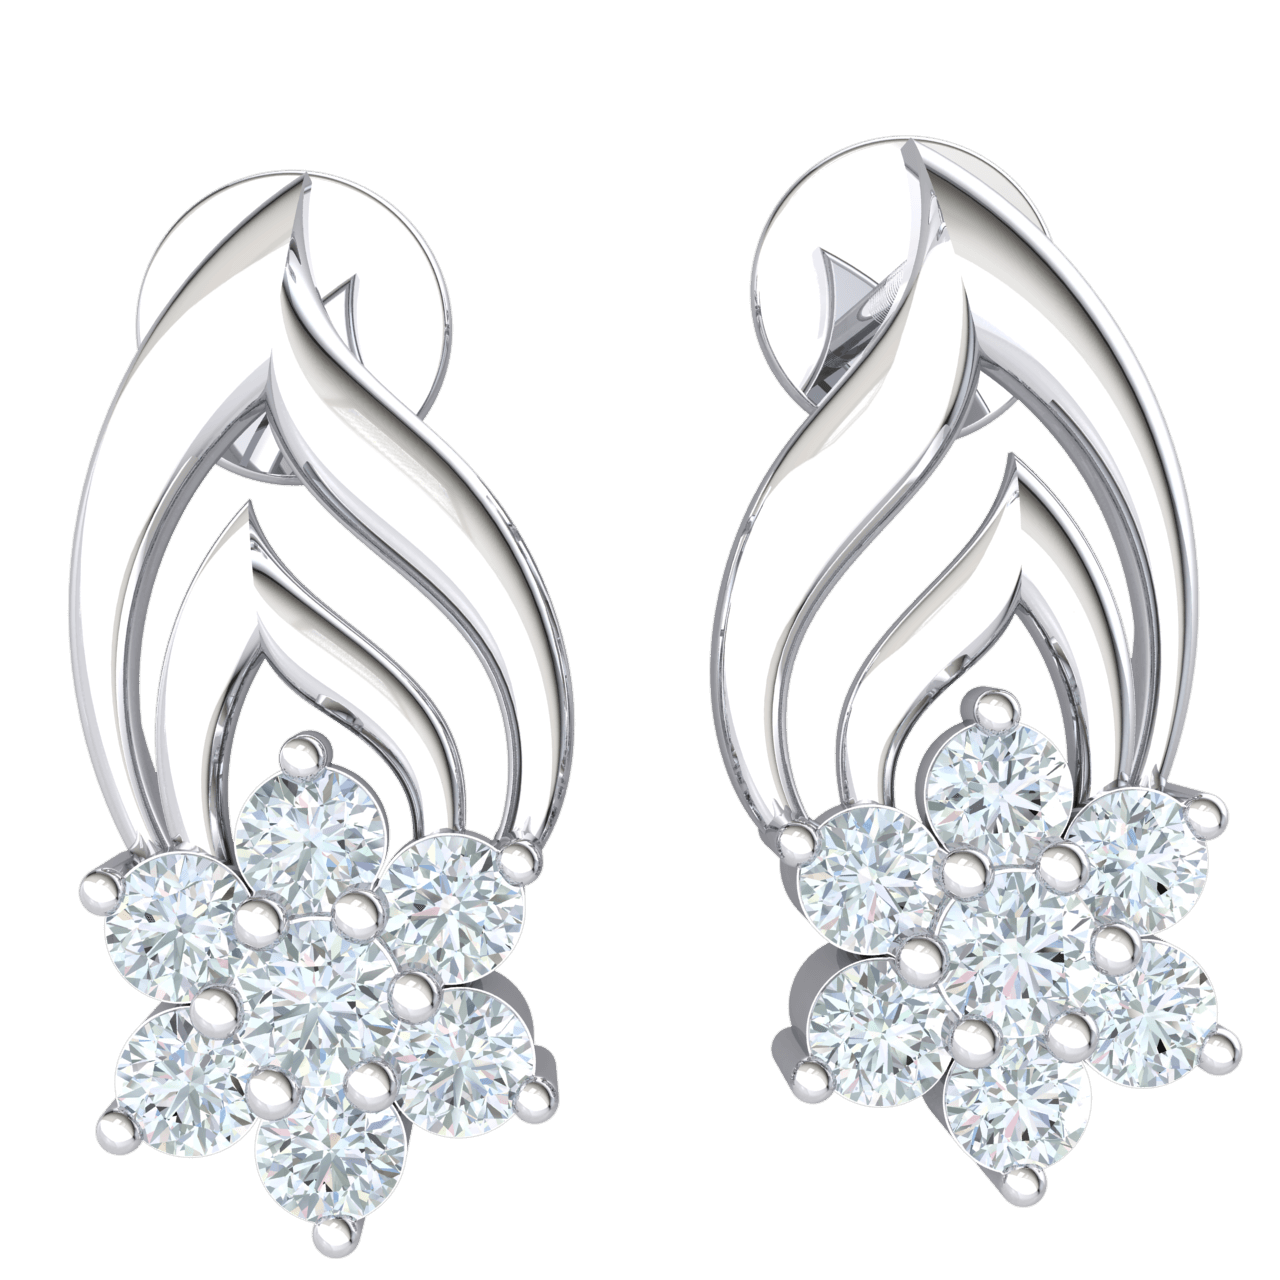 Absolutely Stunning Real Double Tear Drop Earrings With A Dazzeling 7 Stone Setting 0.37 Ct IJ SI2 and 14 kt Gold